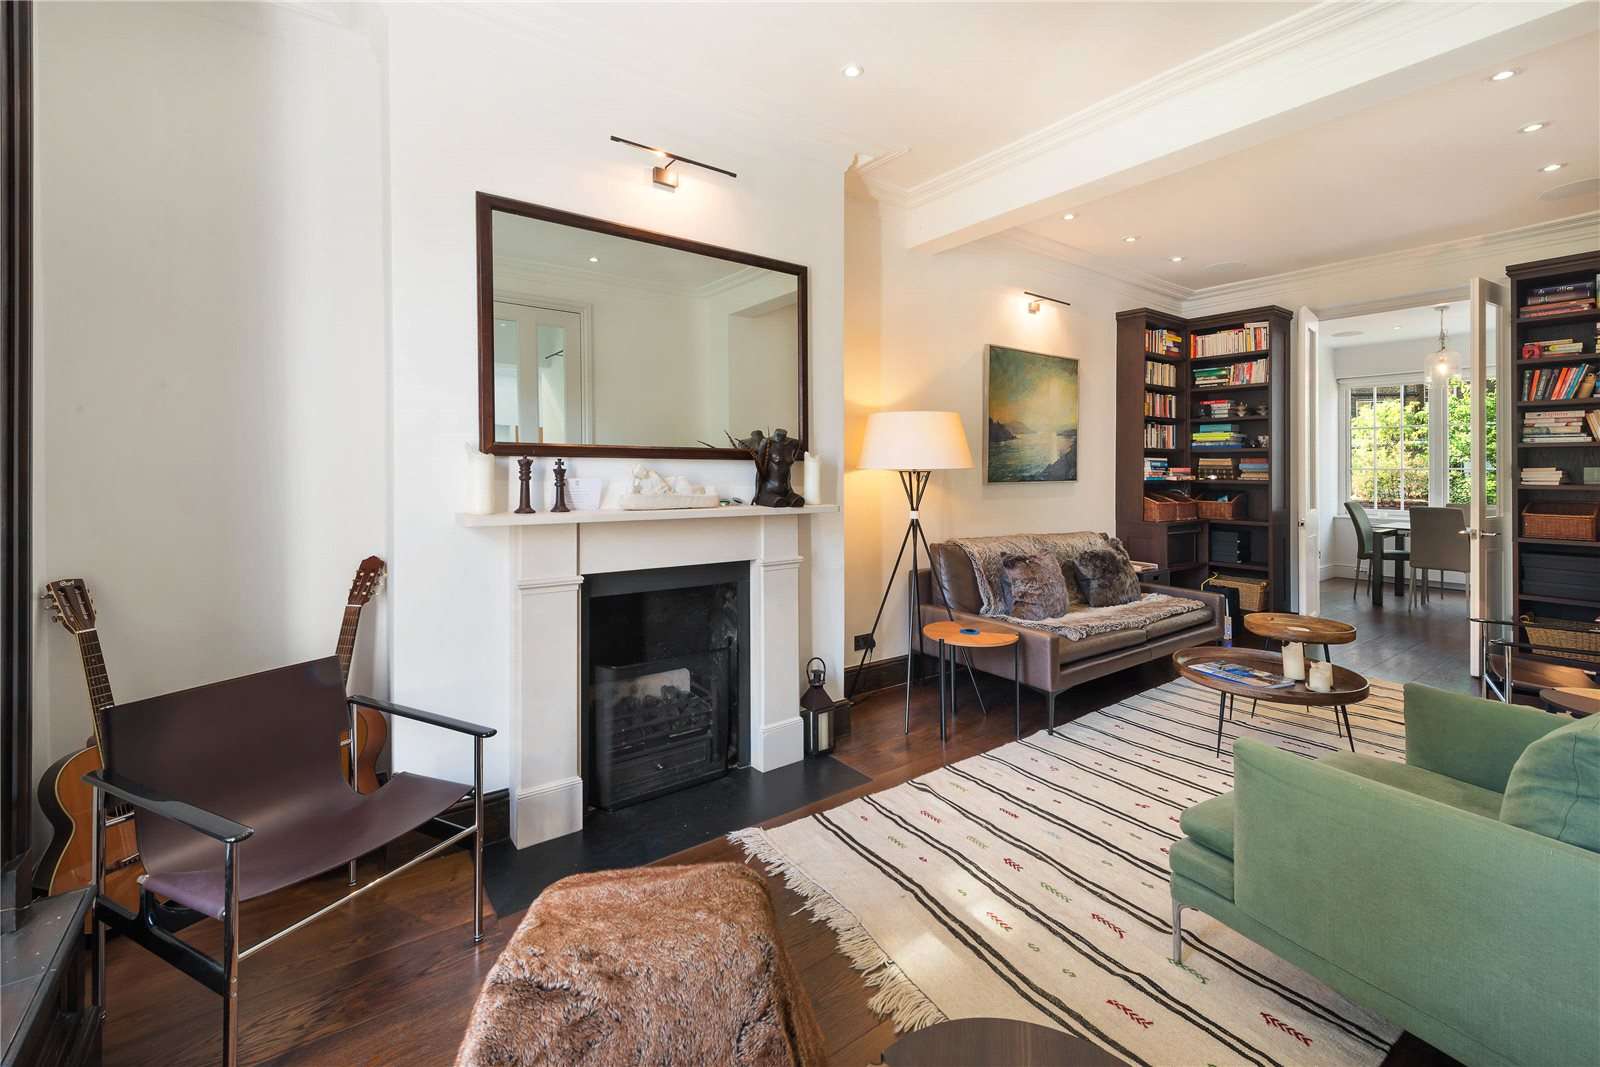 Additional photo for property listing at Pelham Street, South Kensington, London, SW7 South Kensington, London, Ingiltere